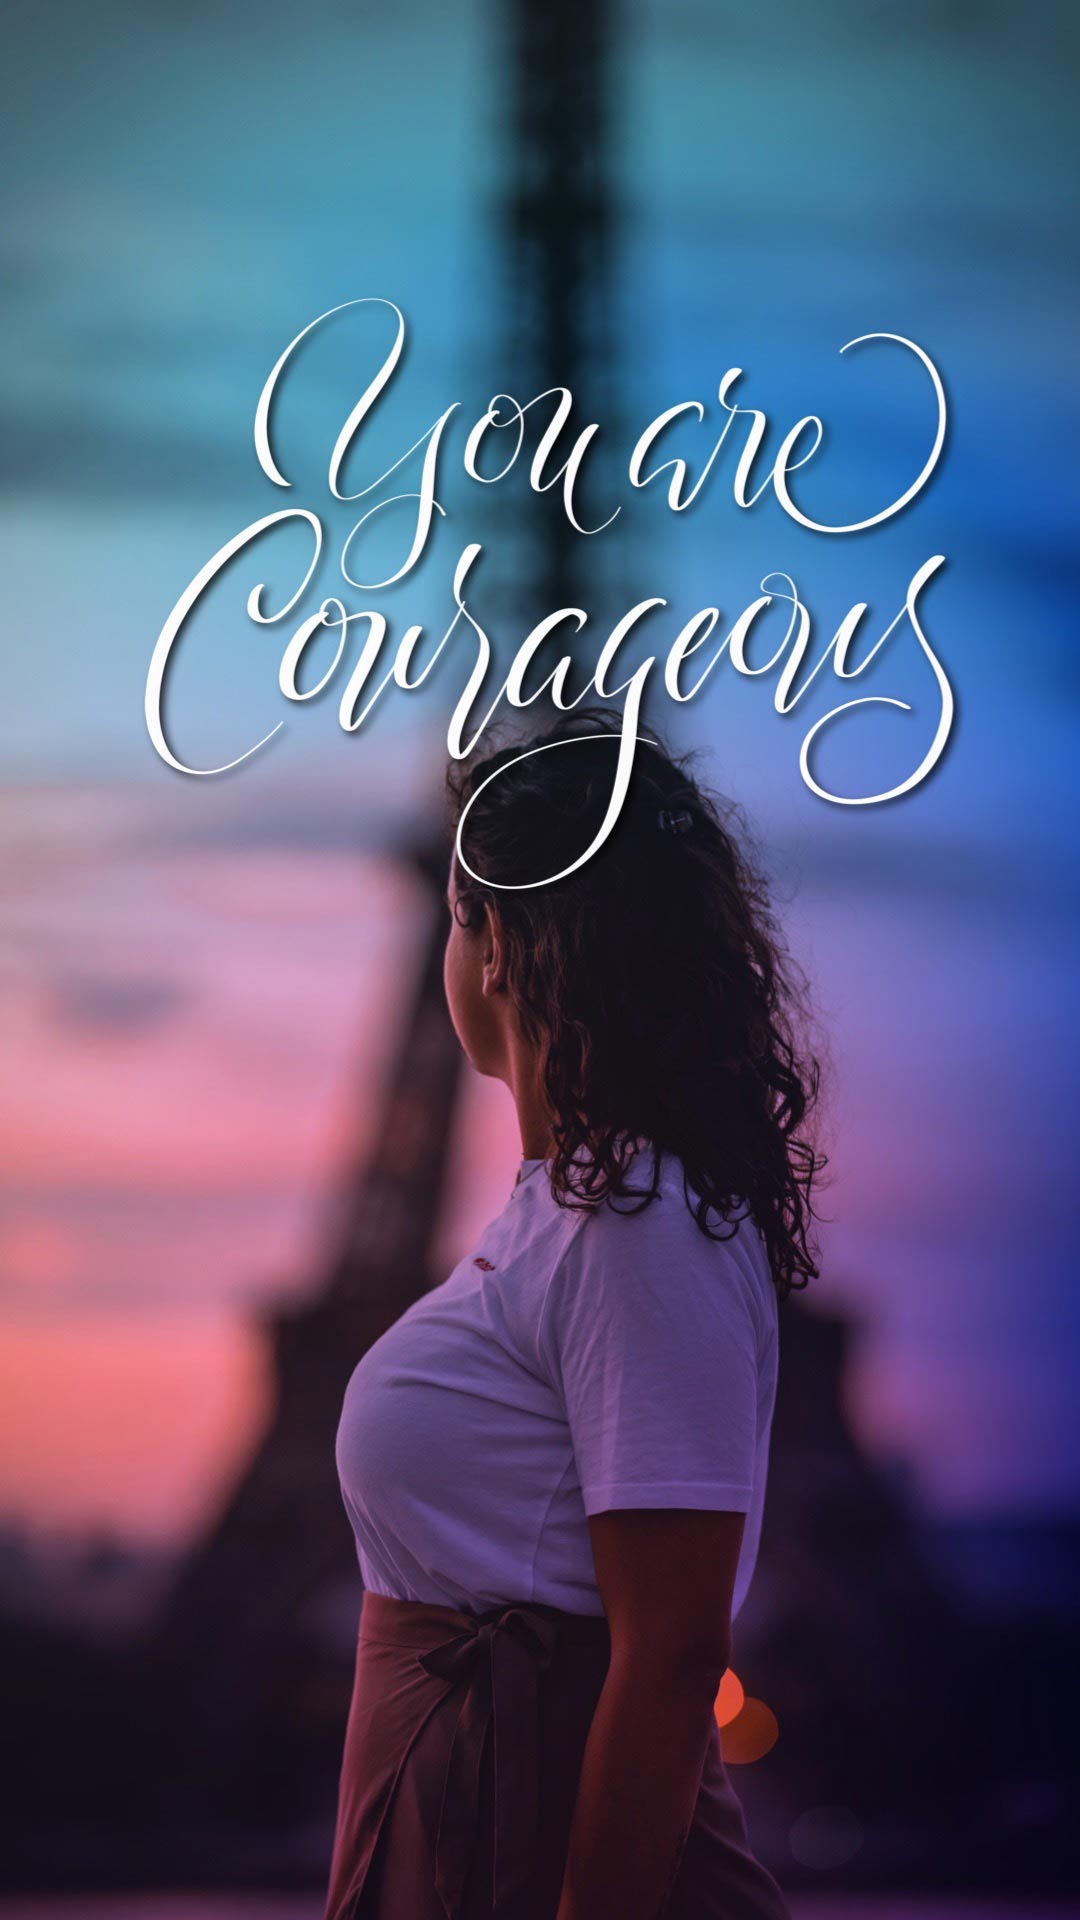 You are Courageous